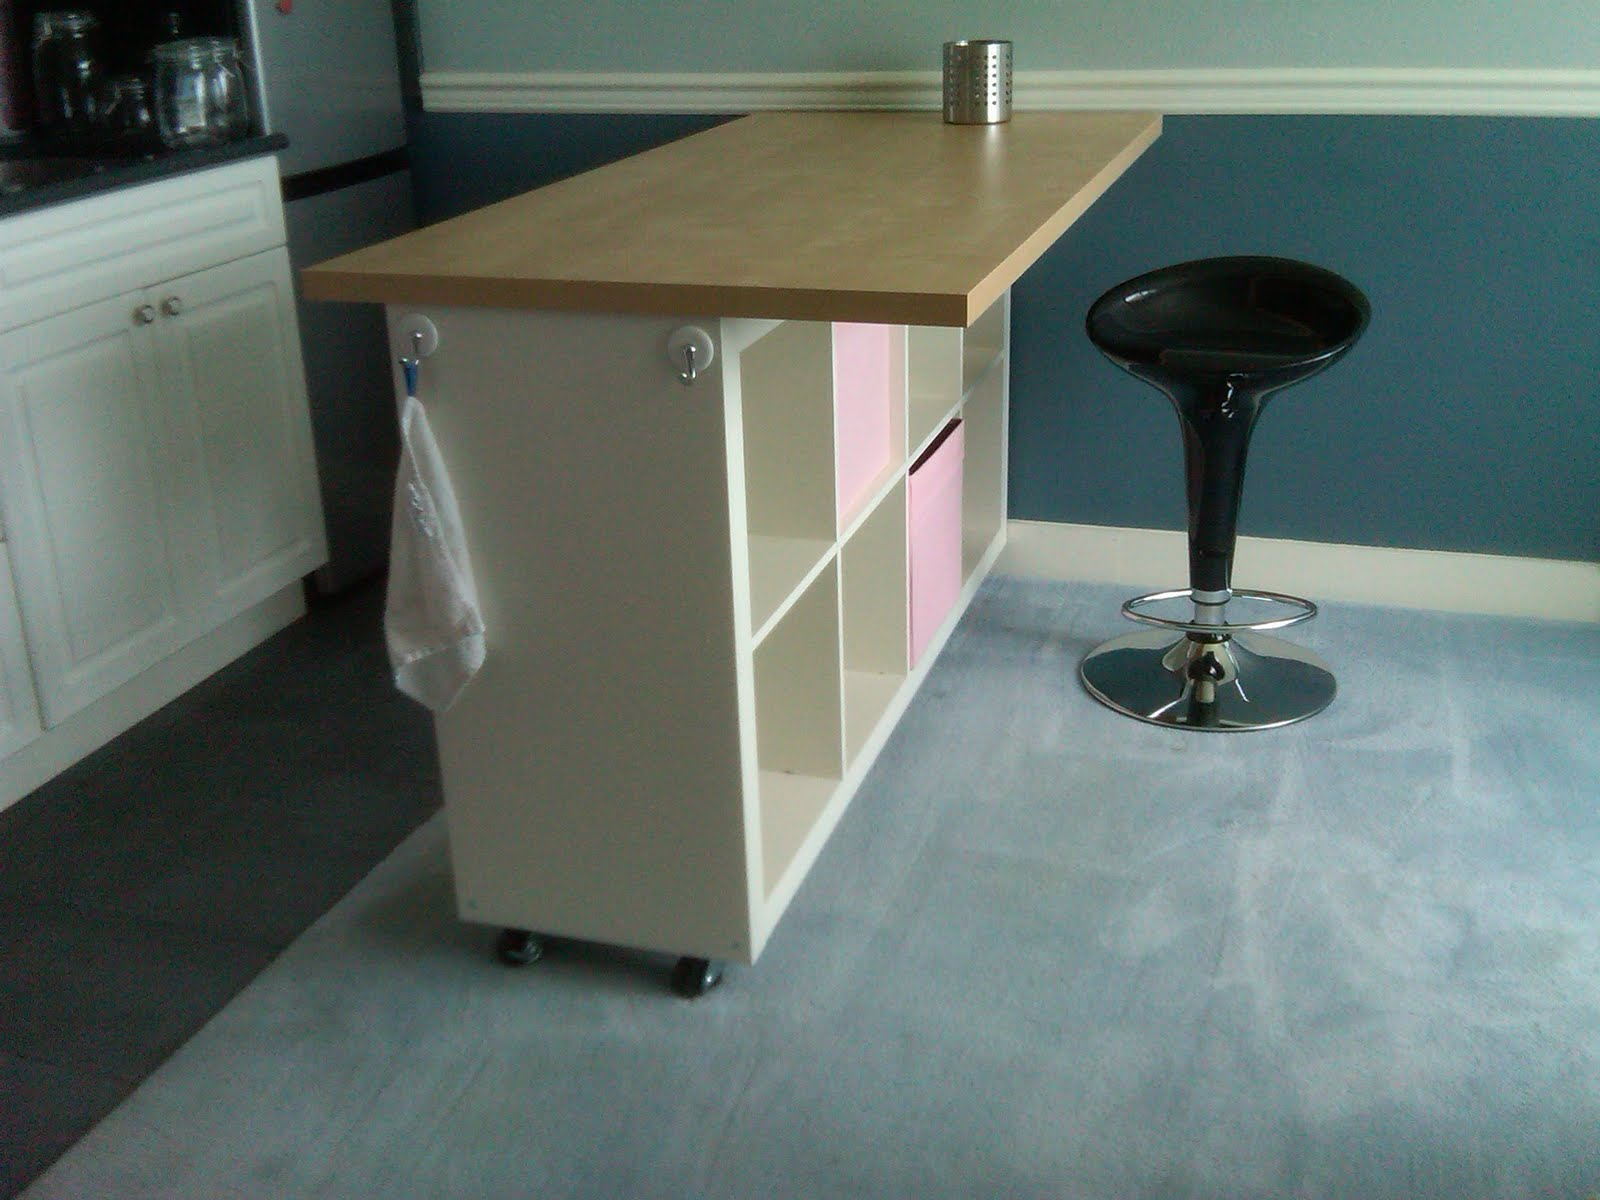 Ikea counter height table design ideas homesfeed for Counter height craft table with storage